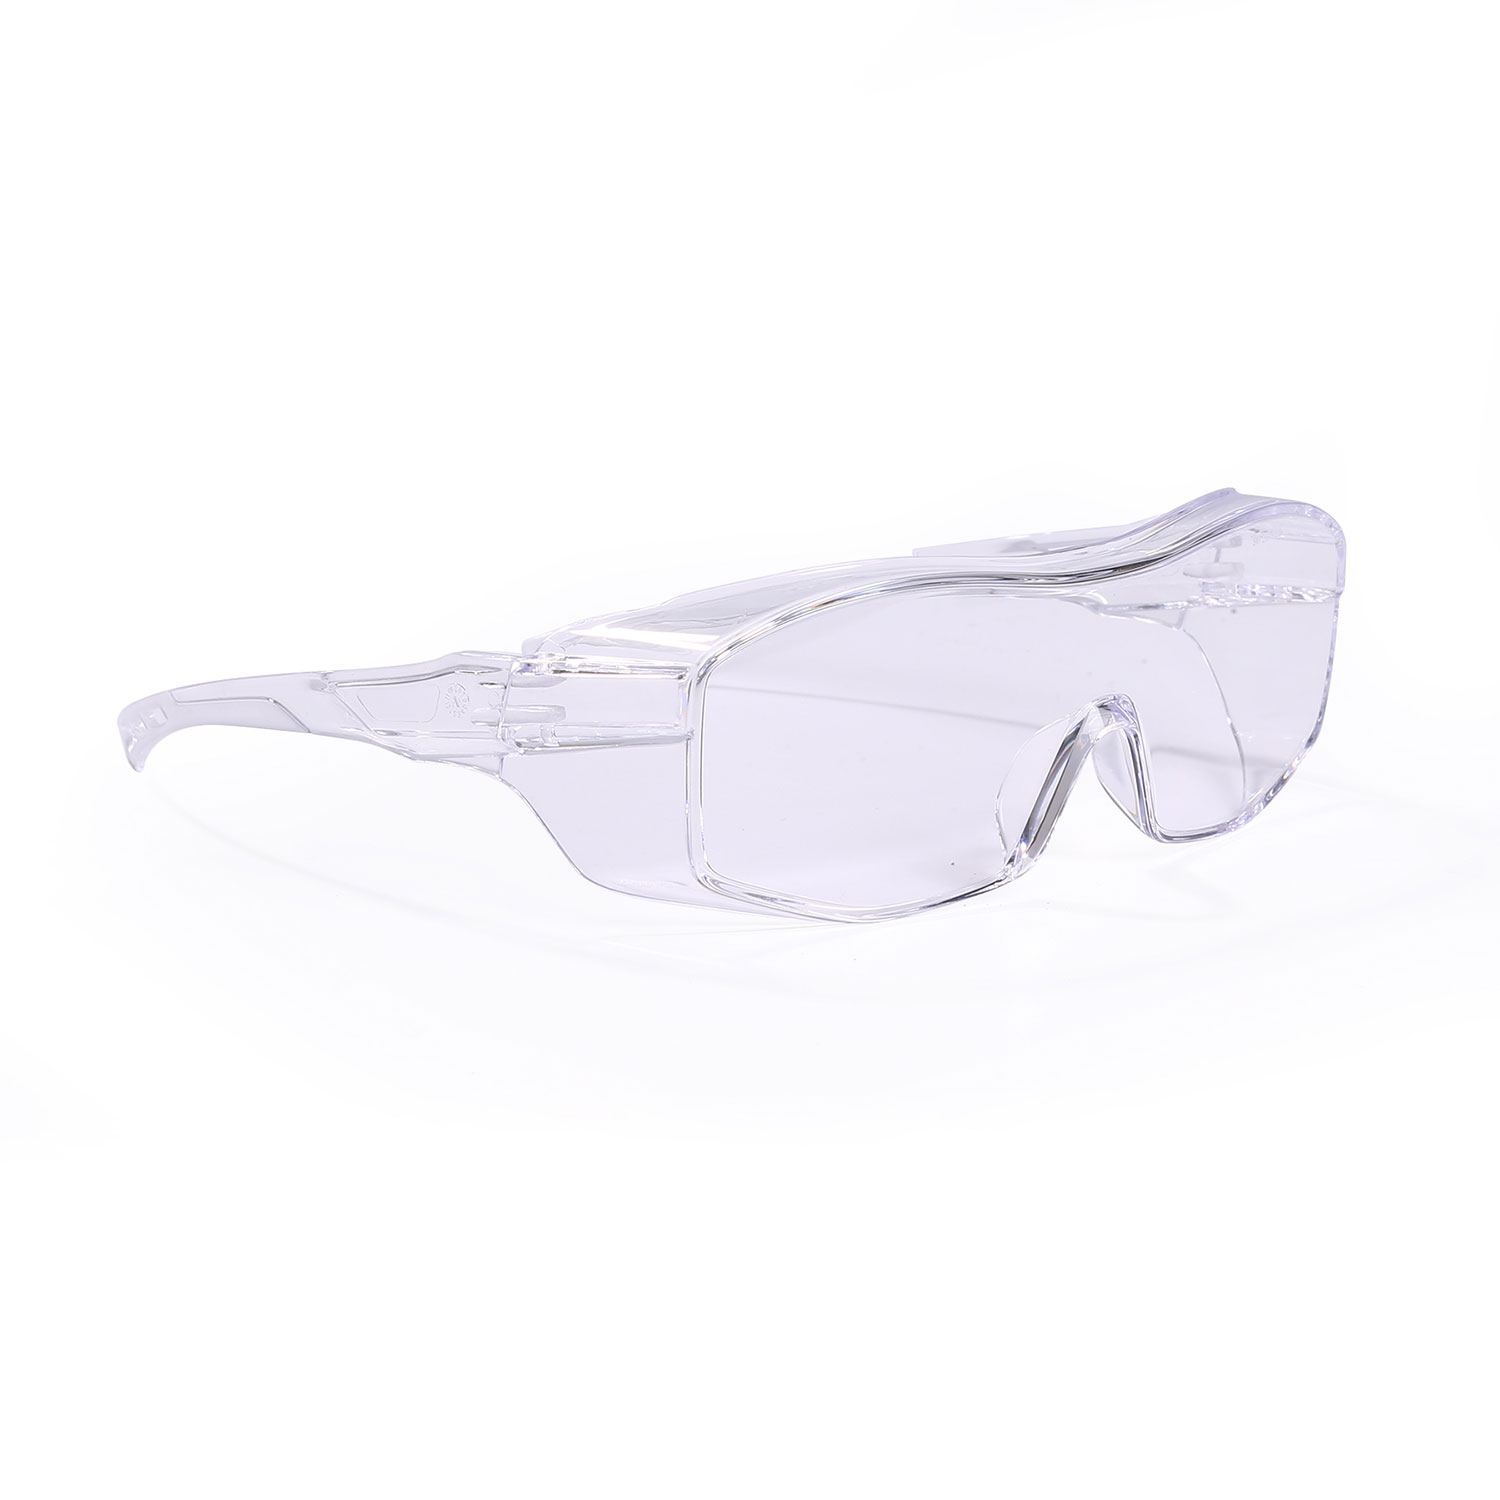 3M™ Peltor Sport Over The Glass Safety Eyewear